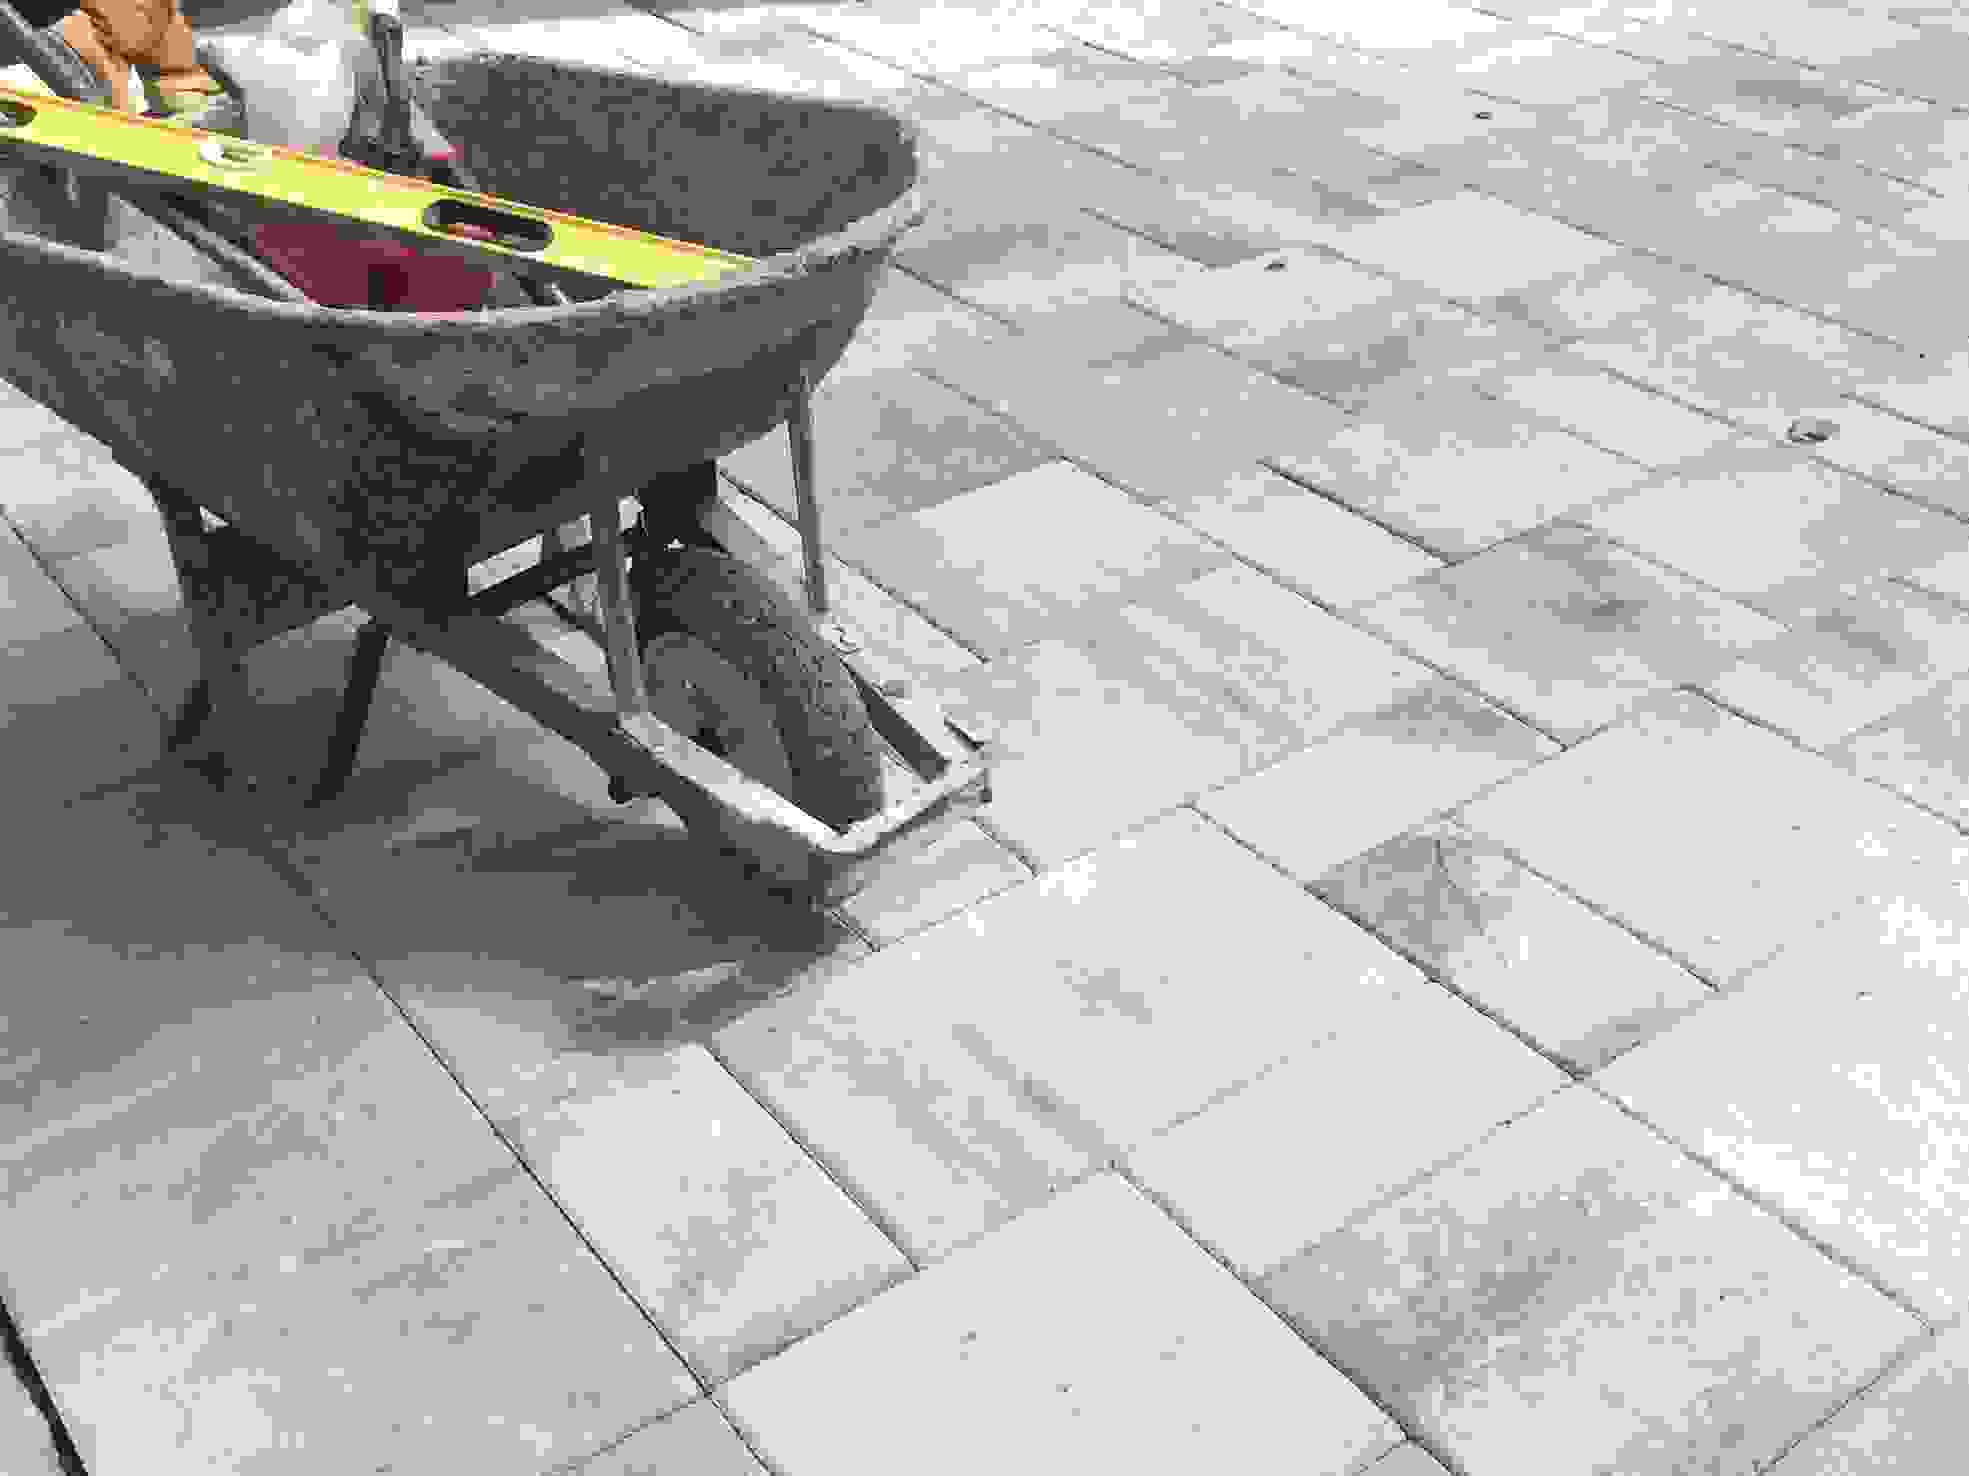 Concrete patio construction with wheelbarrow level and other concrete contractor tools